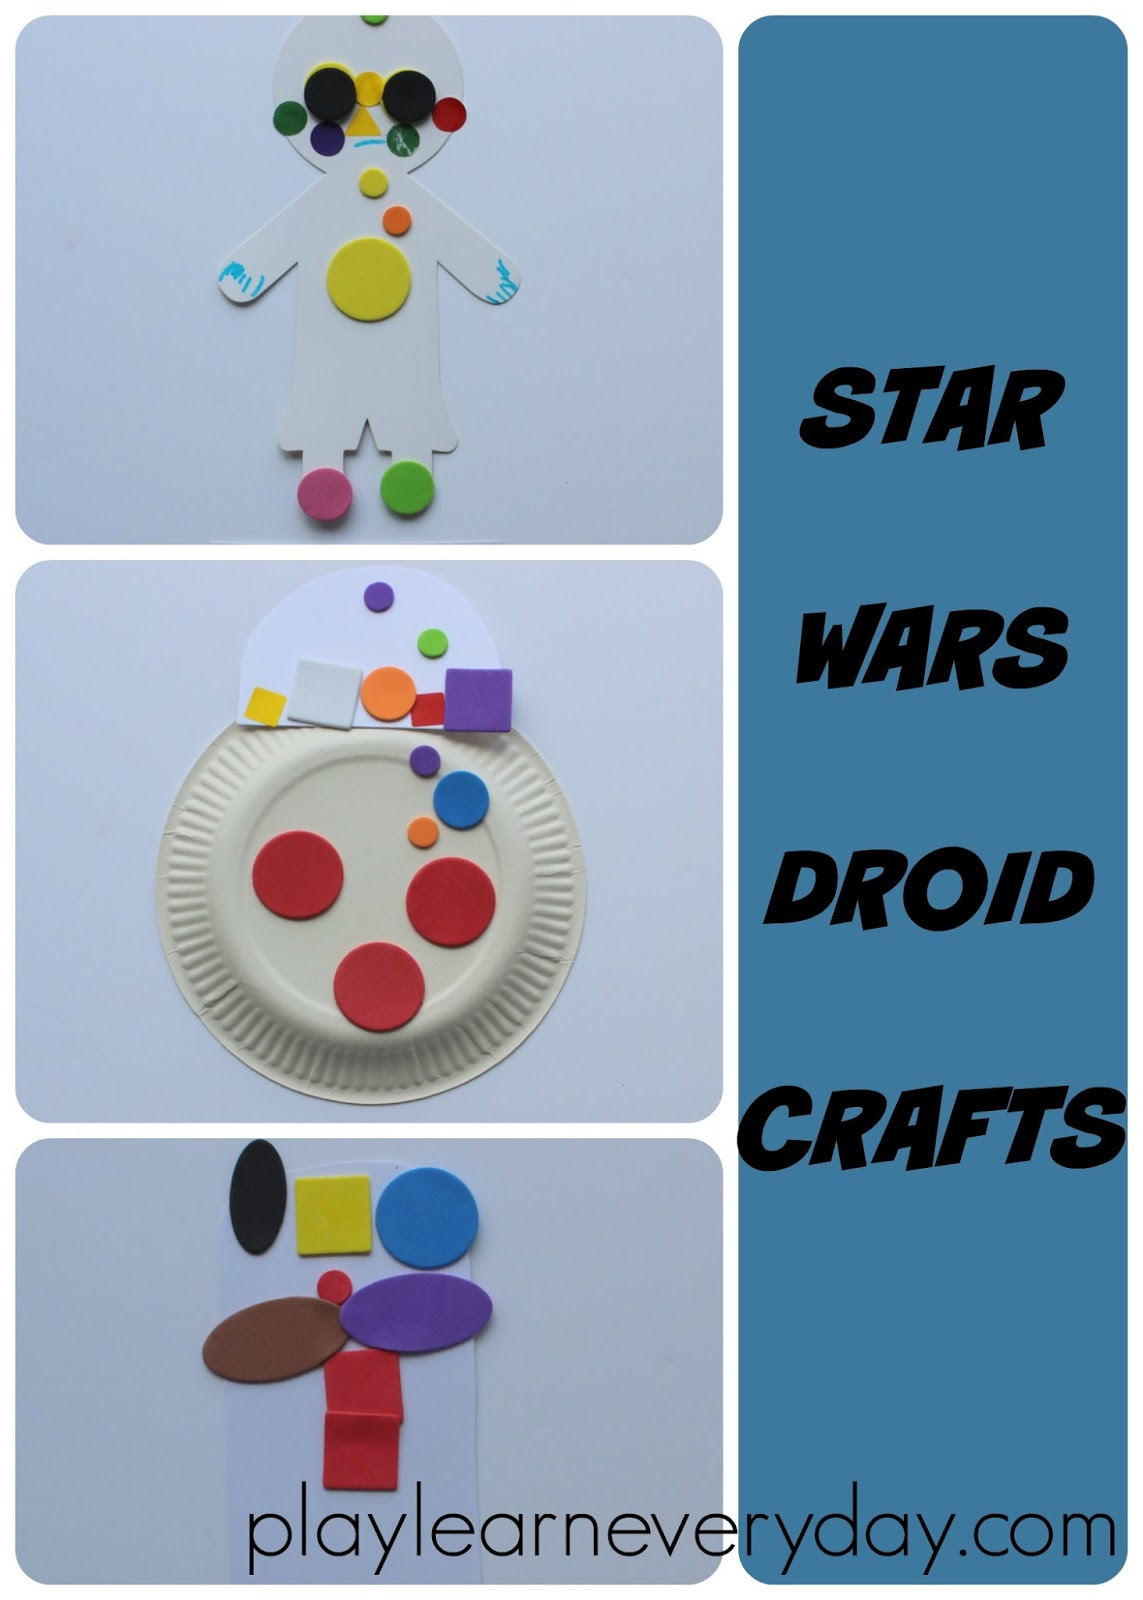 Star Wars Droid Crafts - Play and Learn Every Day